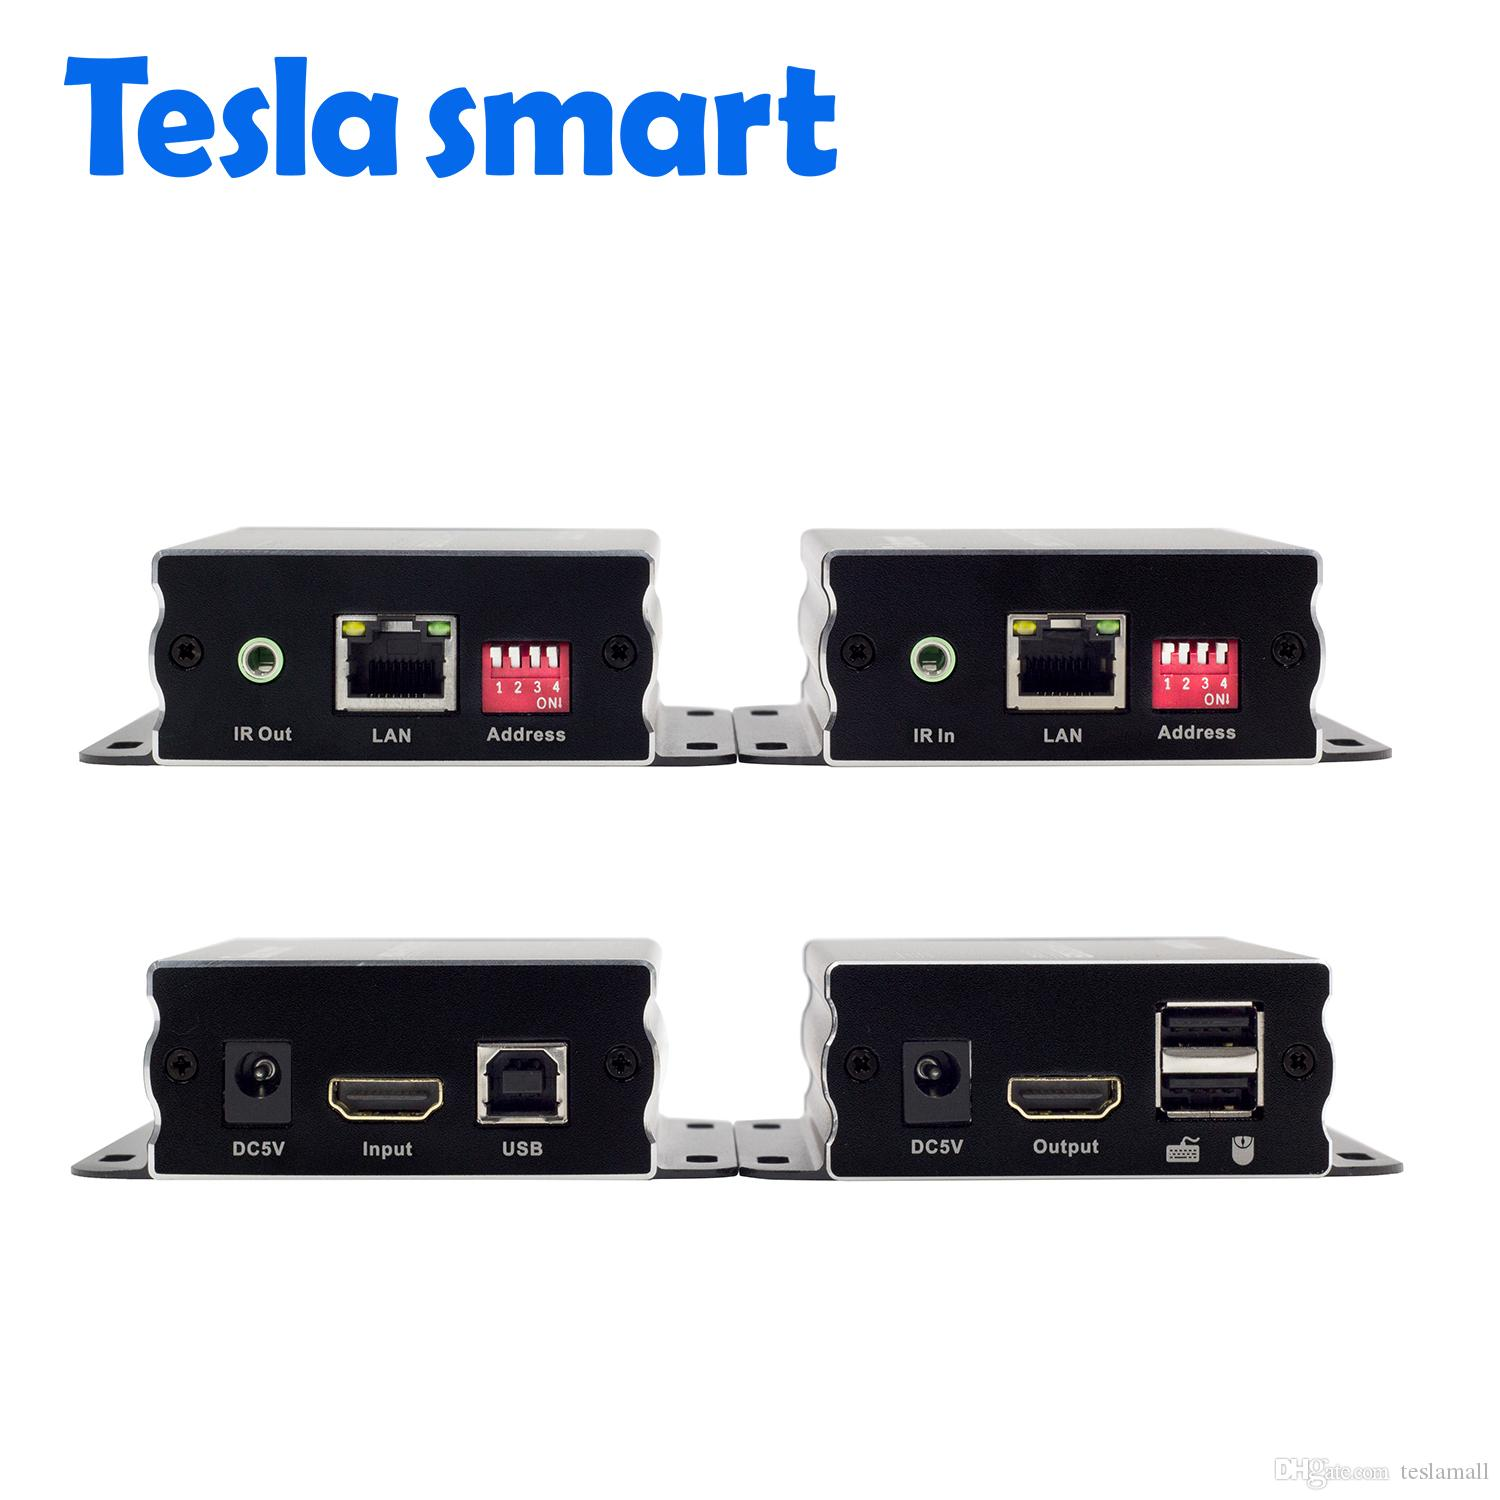 Tesla smart IP Network KVM Extender Many to Many 120m USB HDMI IR KVM  Extender by CAT5e/6 TCP/IP(1 TX 1 RX)